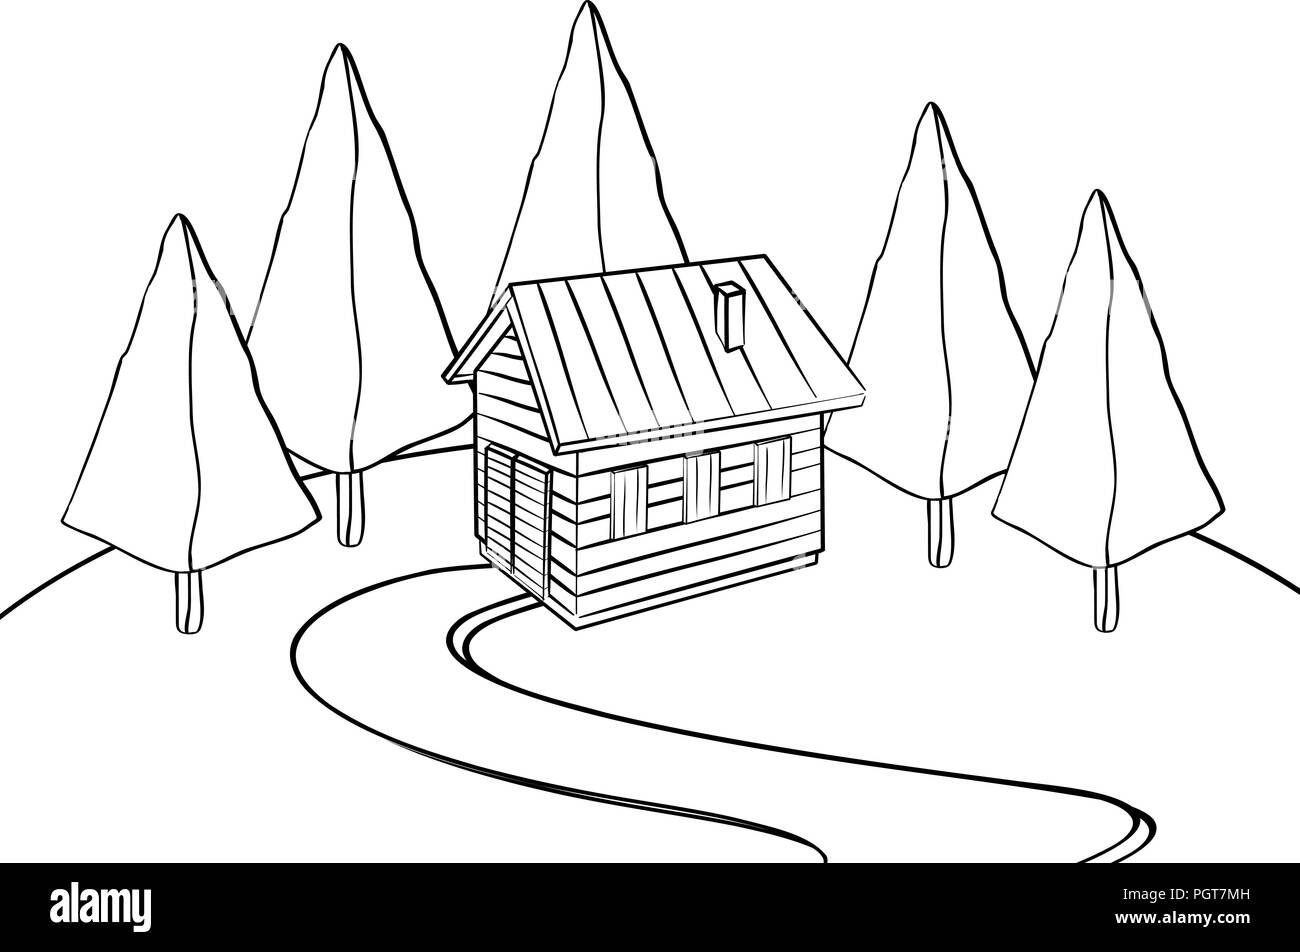 Cabin in the woods hand drawn sketch in black and white - Stock Vector